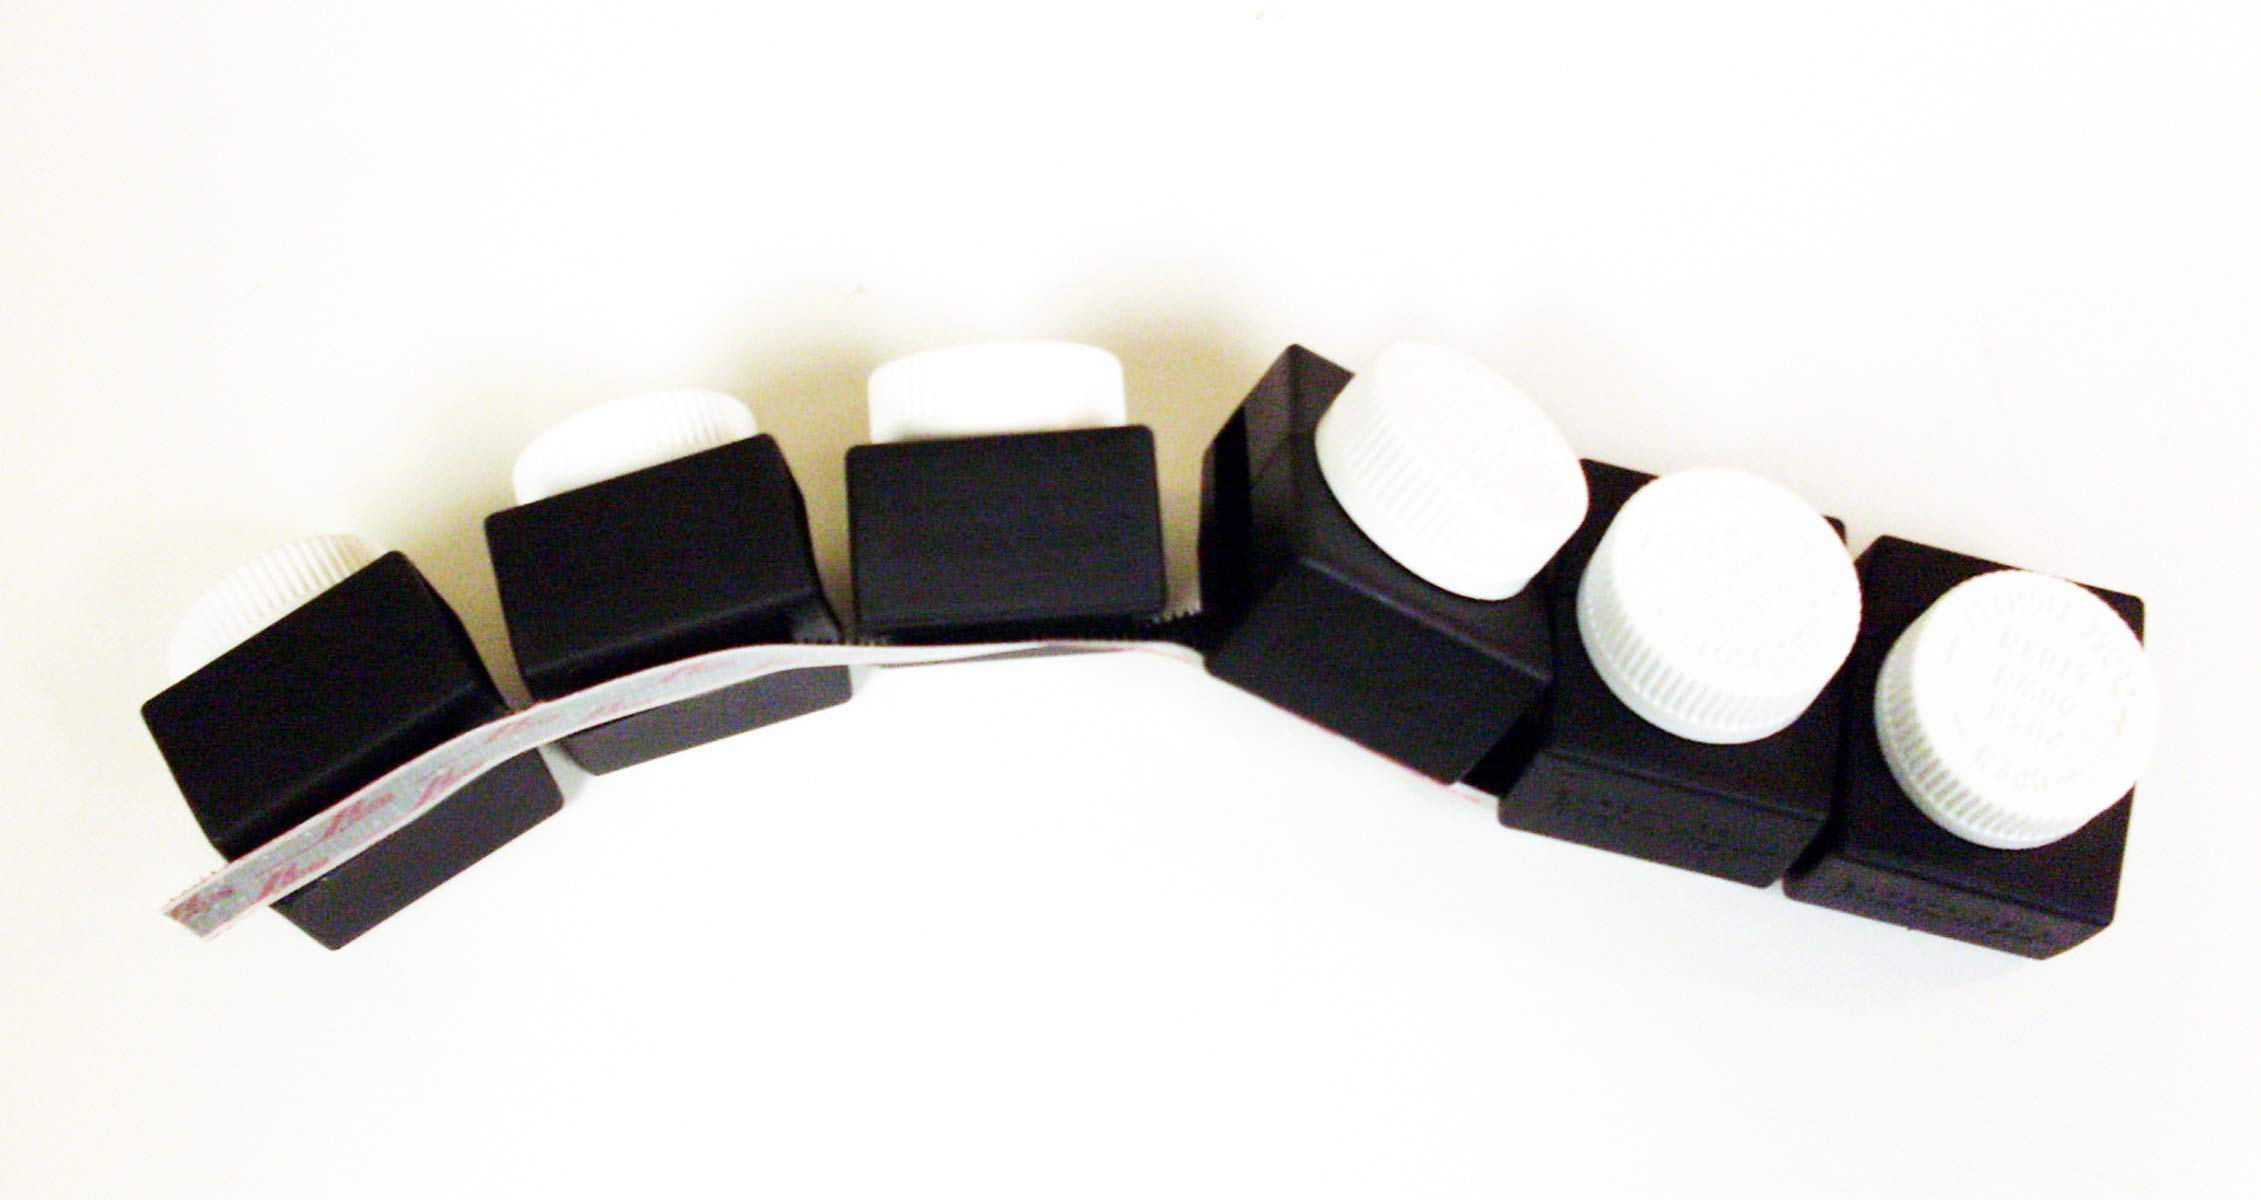 Buckle Guard Bus Kit (Black) - Seat Belt Button Covers for Buses Includes 6 Units Plus Velcro for Storing, Perfect for Schools